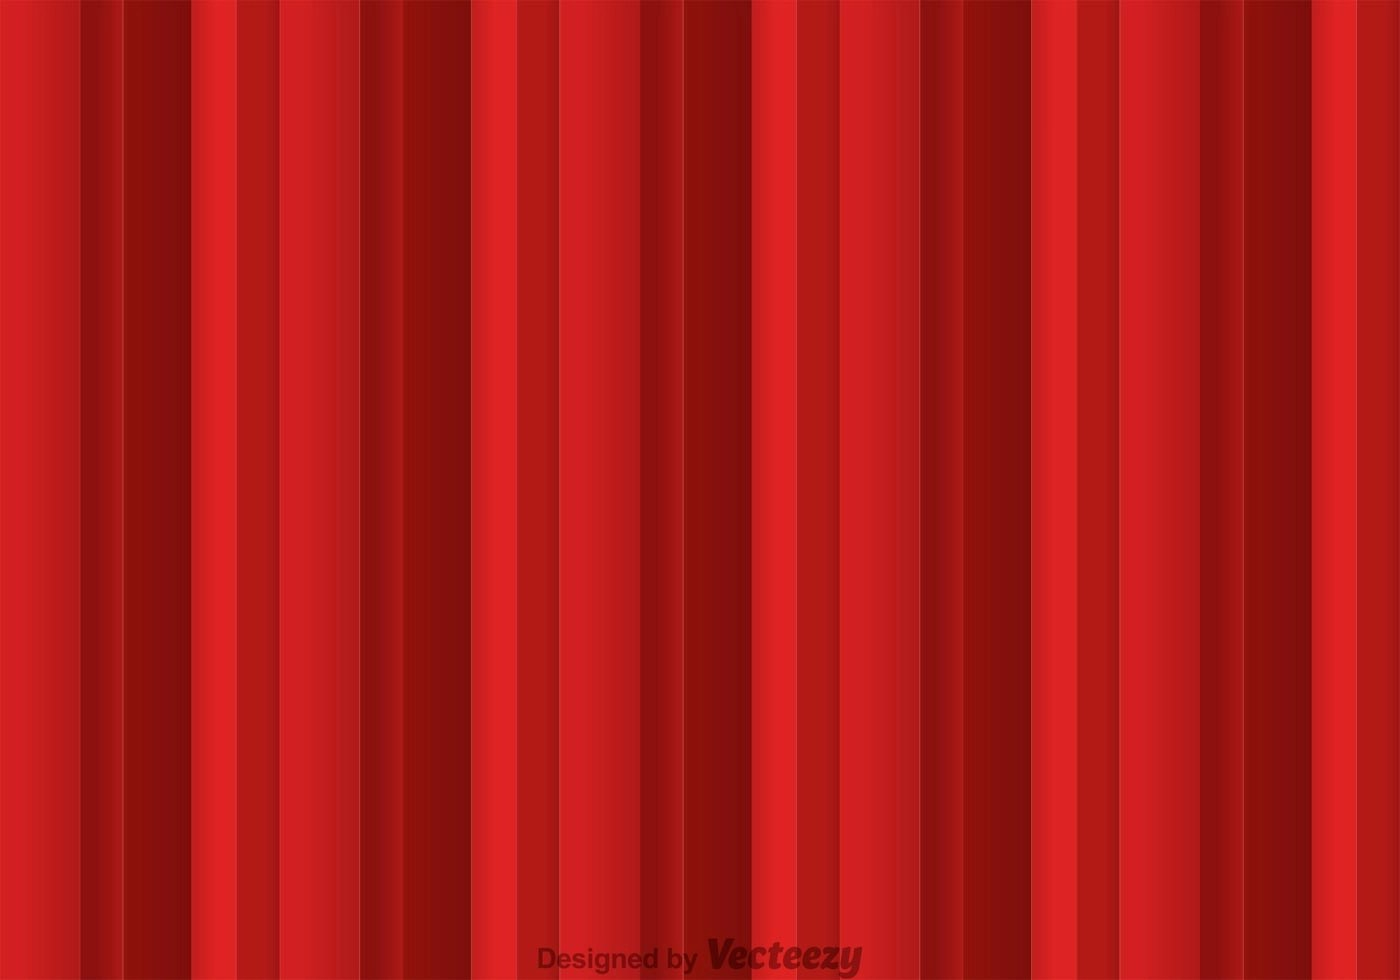 Wallpaper Pastel Polos Red Maroon Line Background Download Free Vector Art Stock